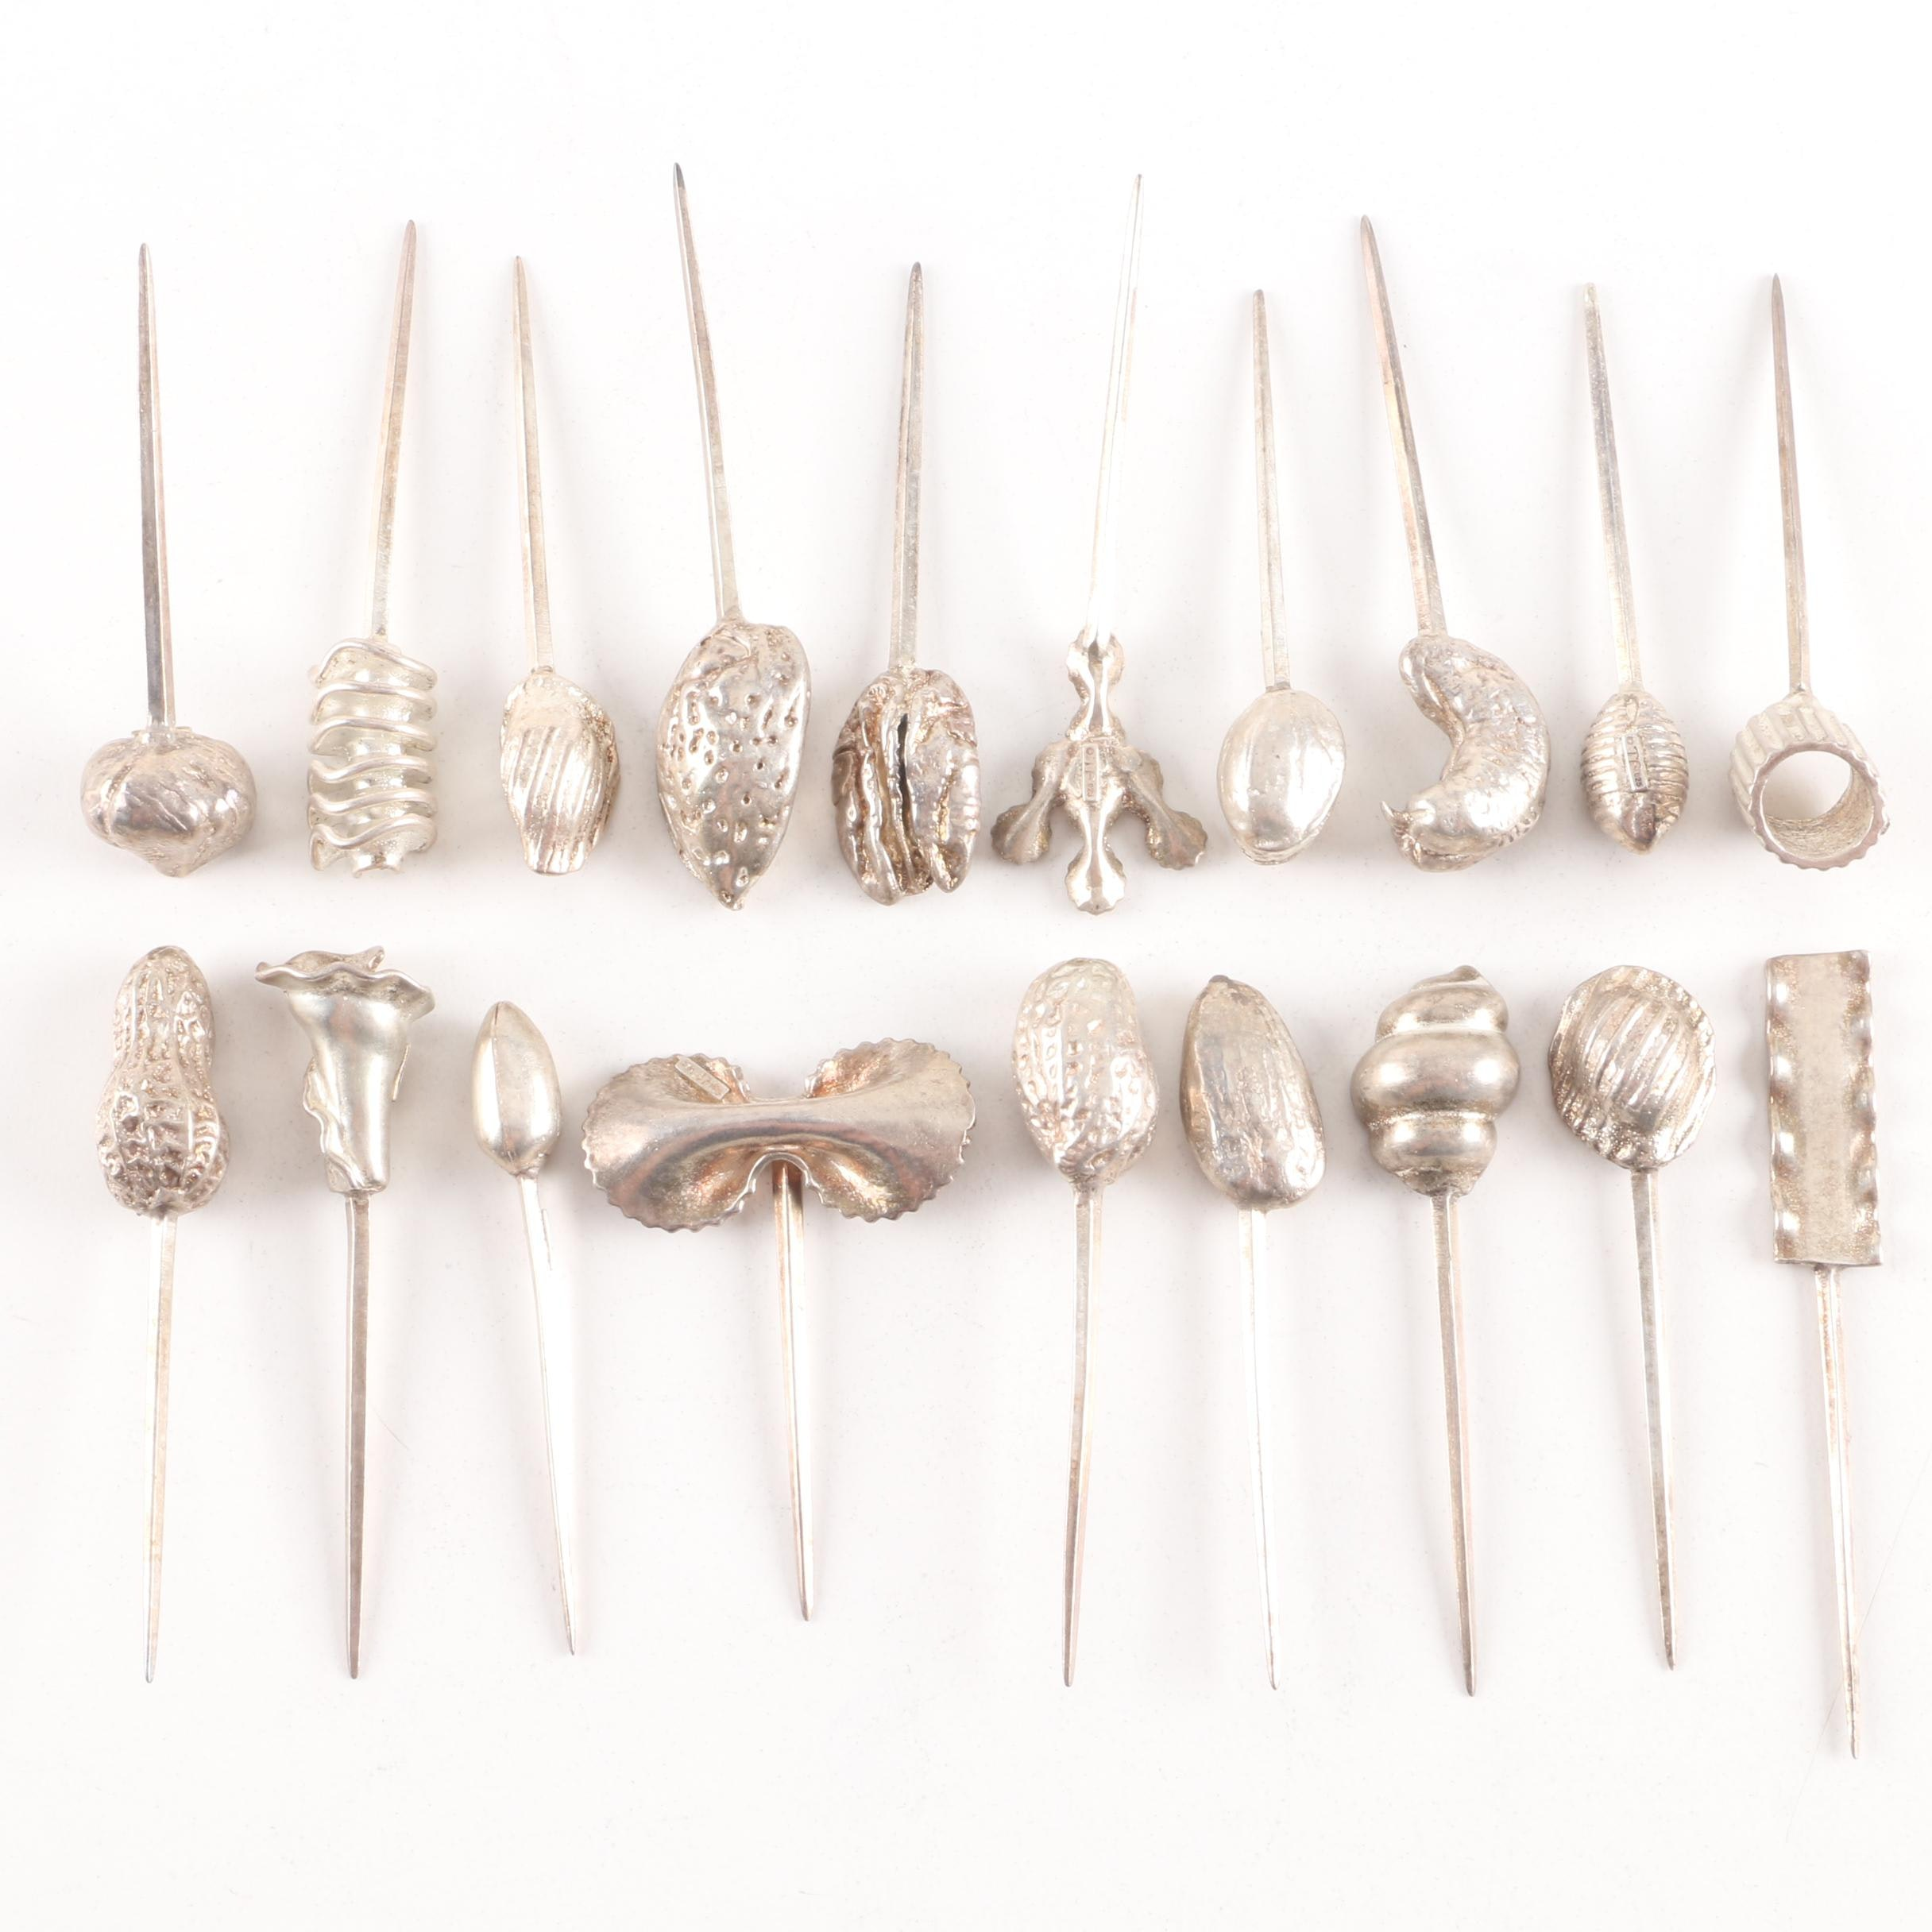 Tavolina Fina Weighted Sterling Silver Figural Cocktail Picks